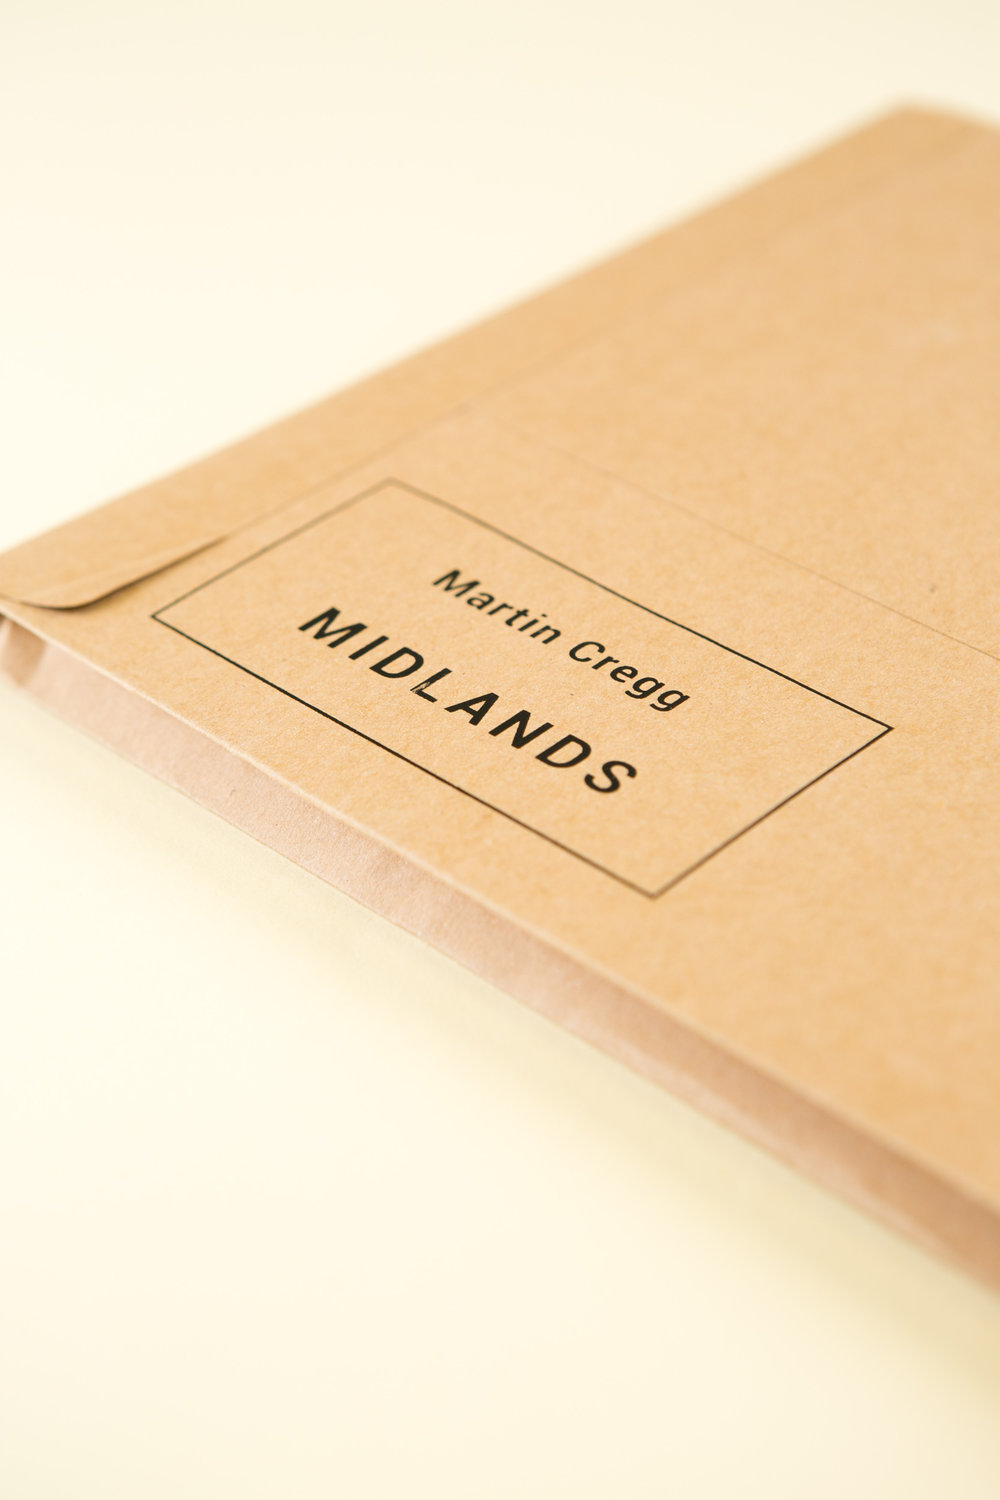 Self-published photobook 'Midlands' featuring photography by Martin Cregg and design by Read That Image.